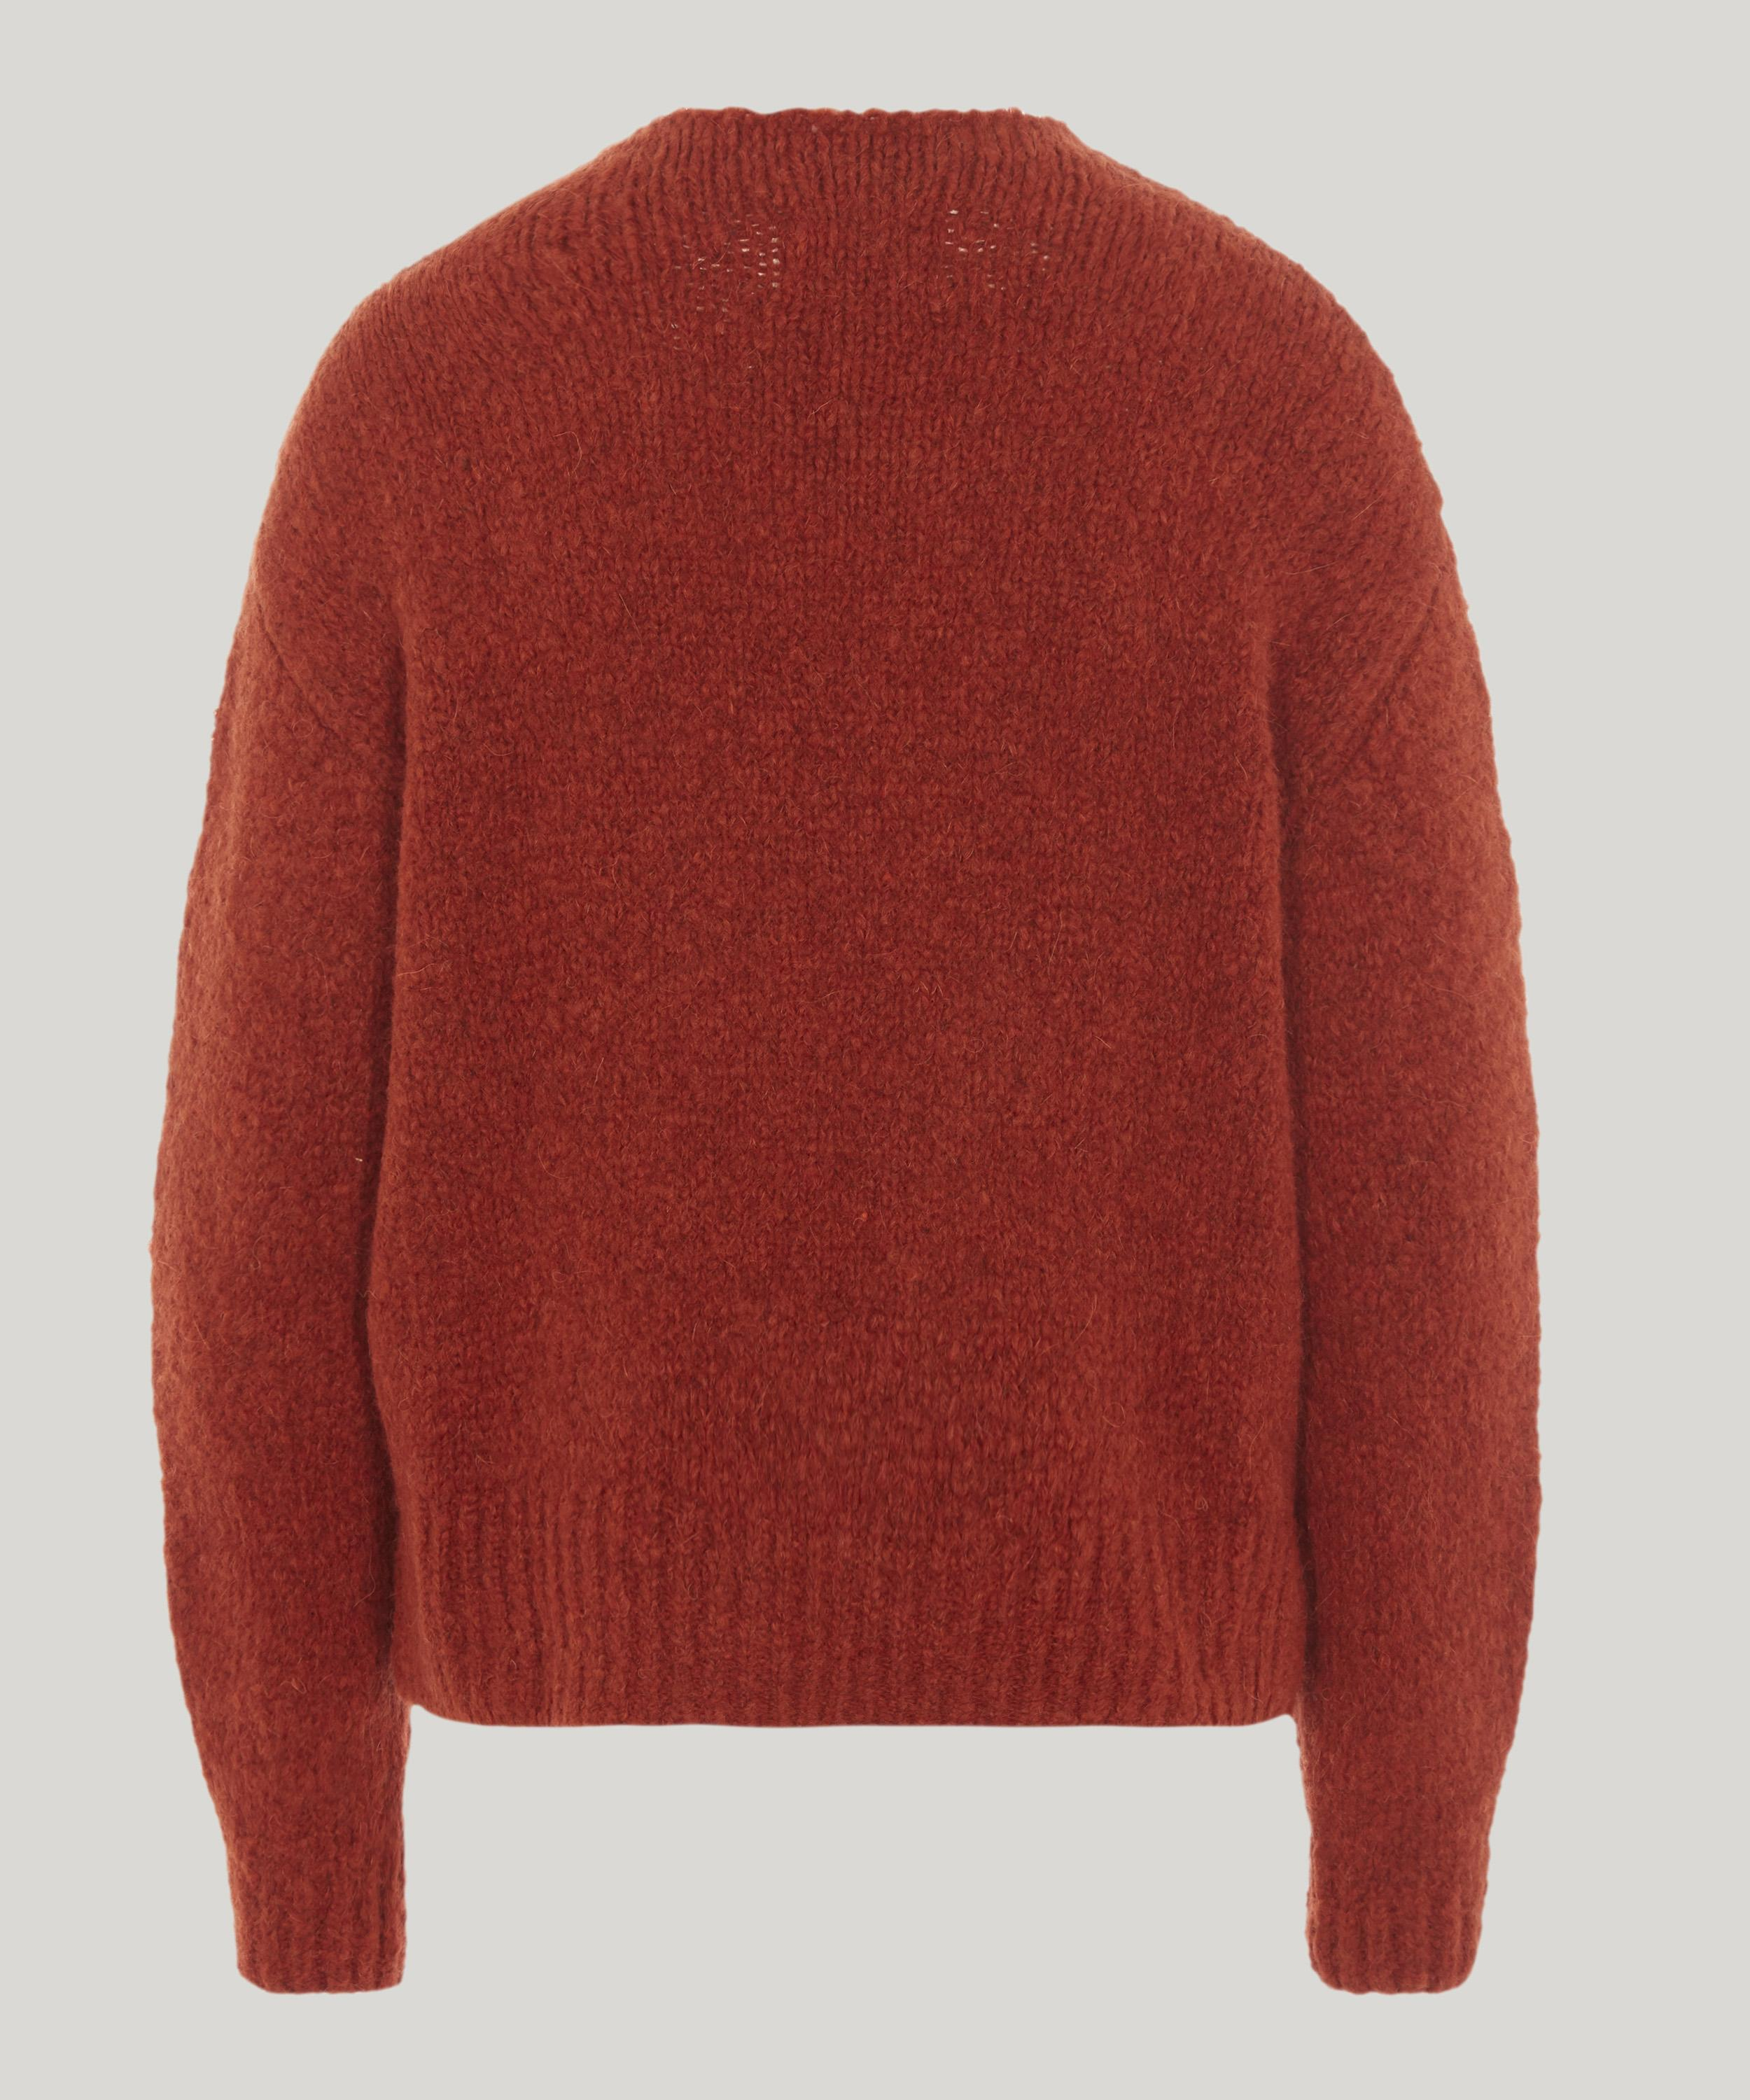 Lyst Paloma Wool Virgo Intarsia Knit Sweater In Red